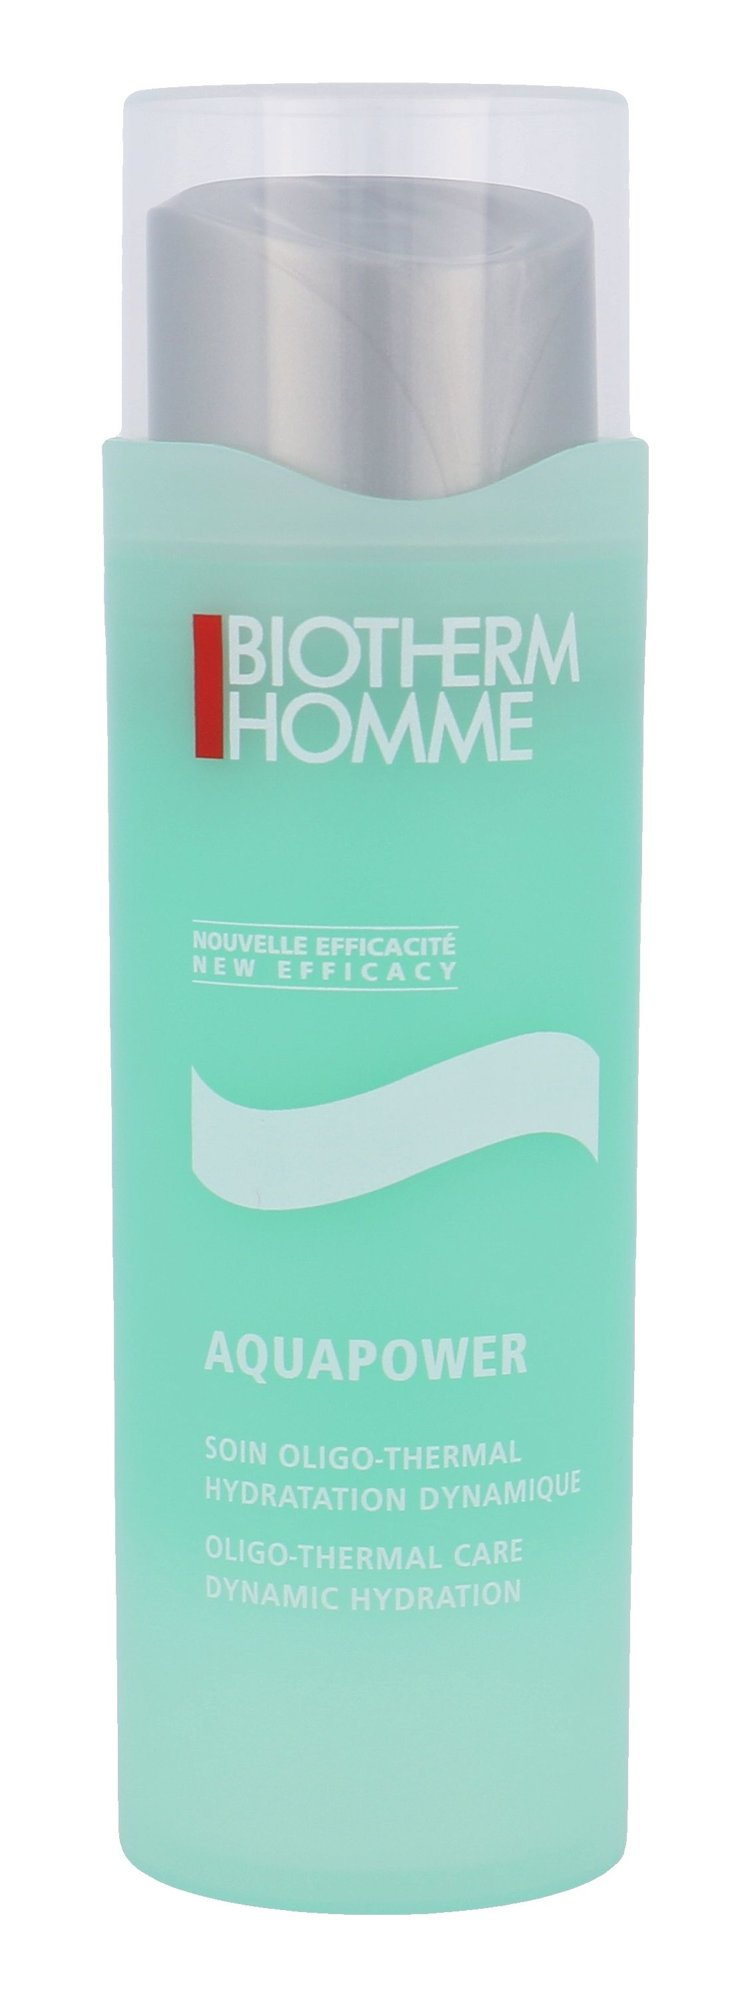 Biotherm Homme Aquapower Day Cream 75ml  Oligo Thermal Care